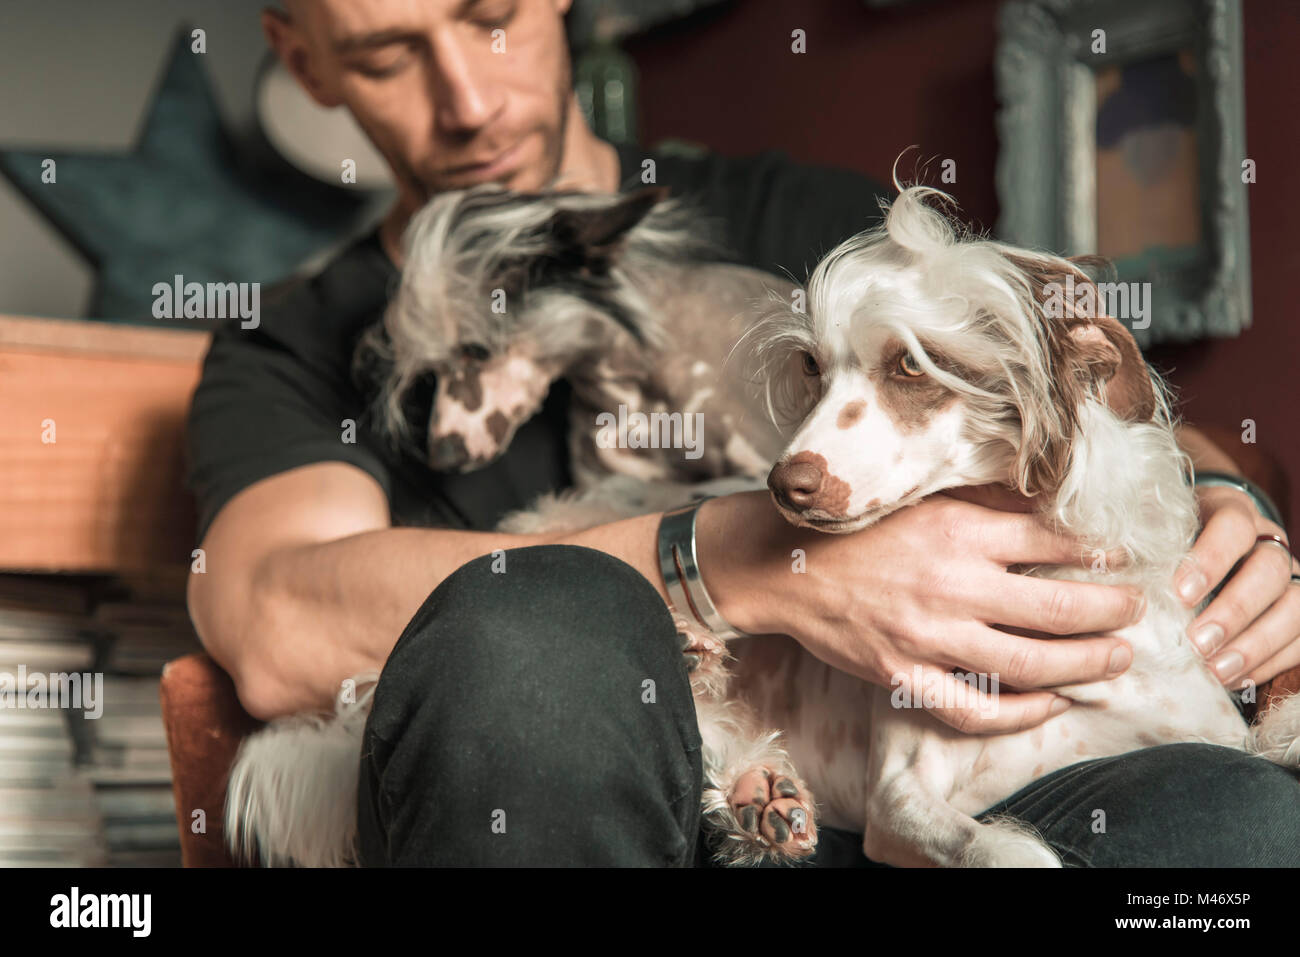 Love between a man and his dog - Stock Image